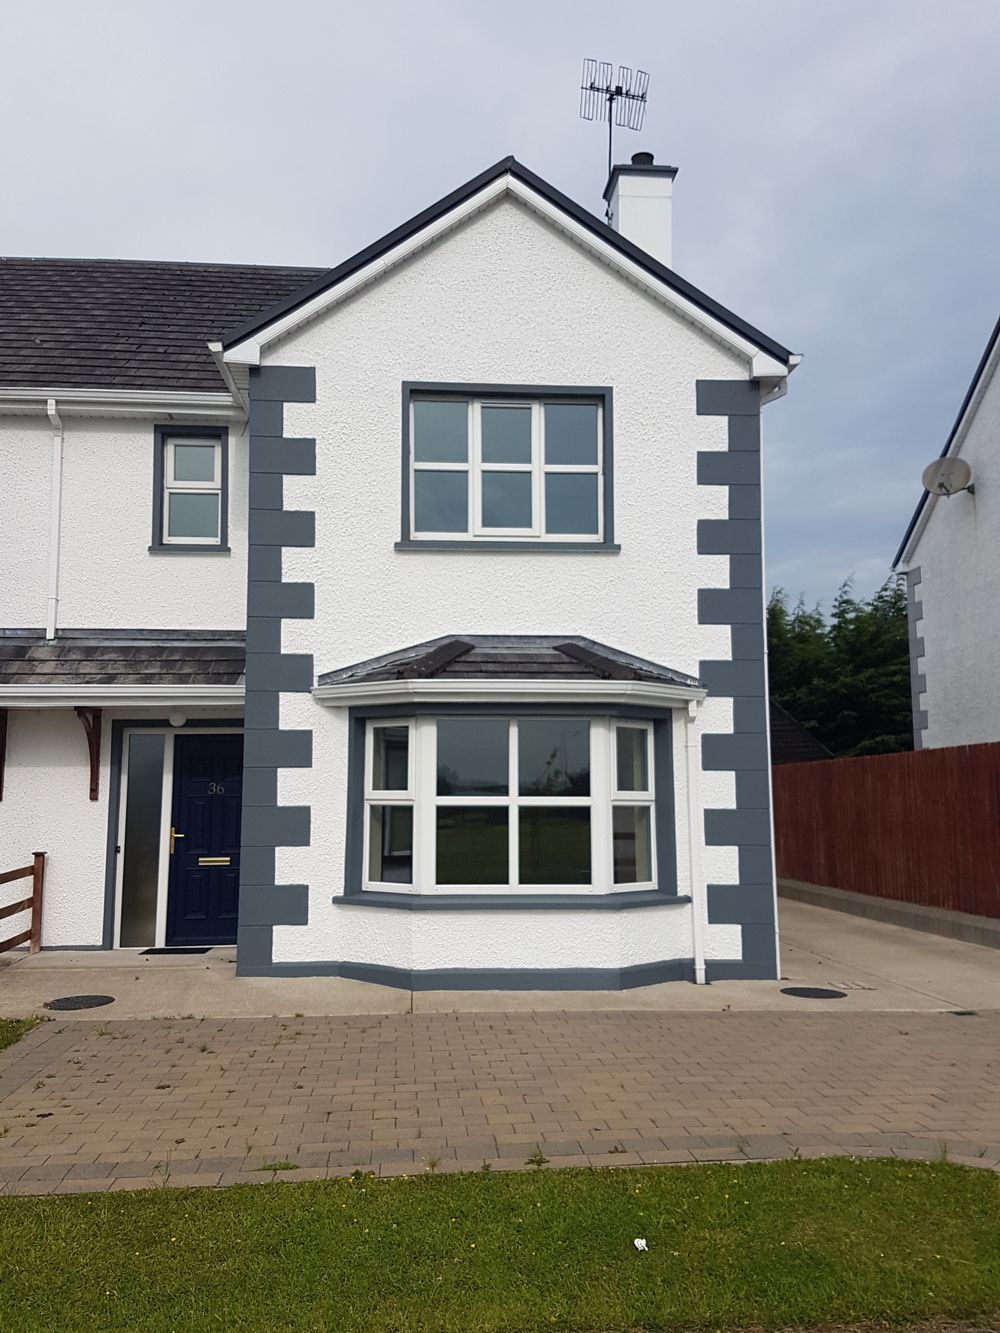 36 Cuirt Aishling, Donegal Road, Ballybofey, Co Donegal F93 E9H6